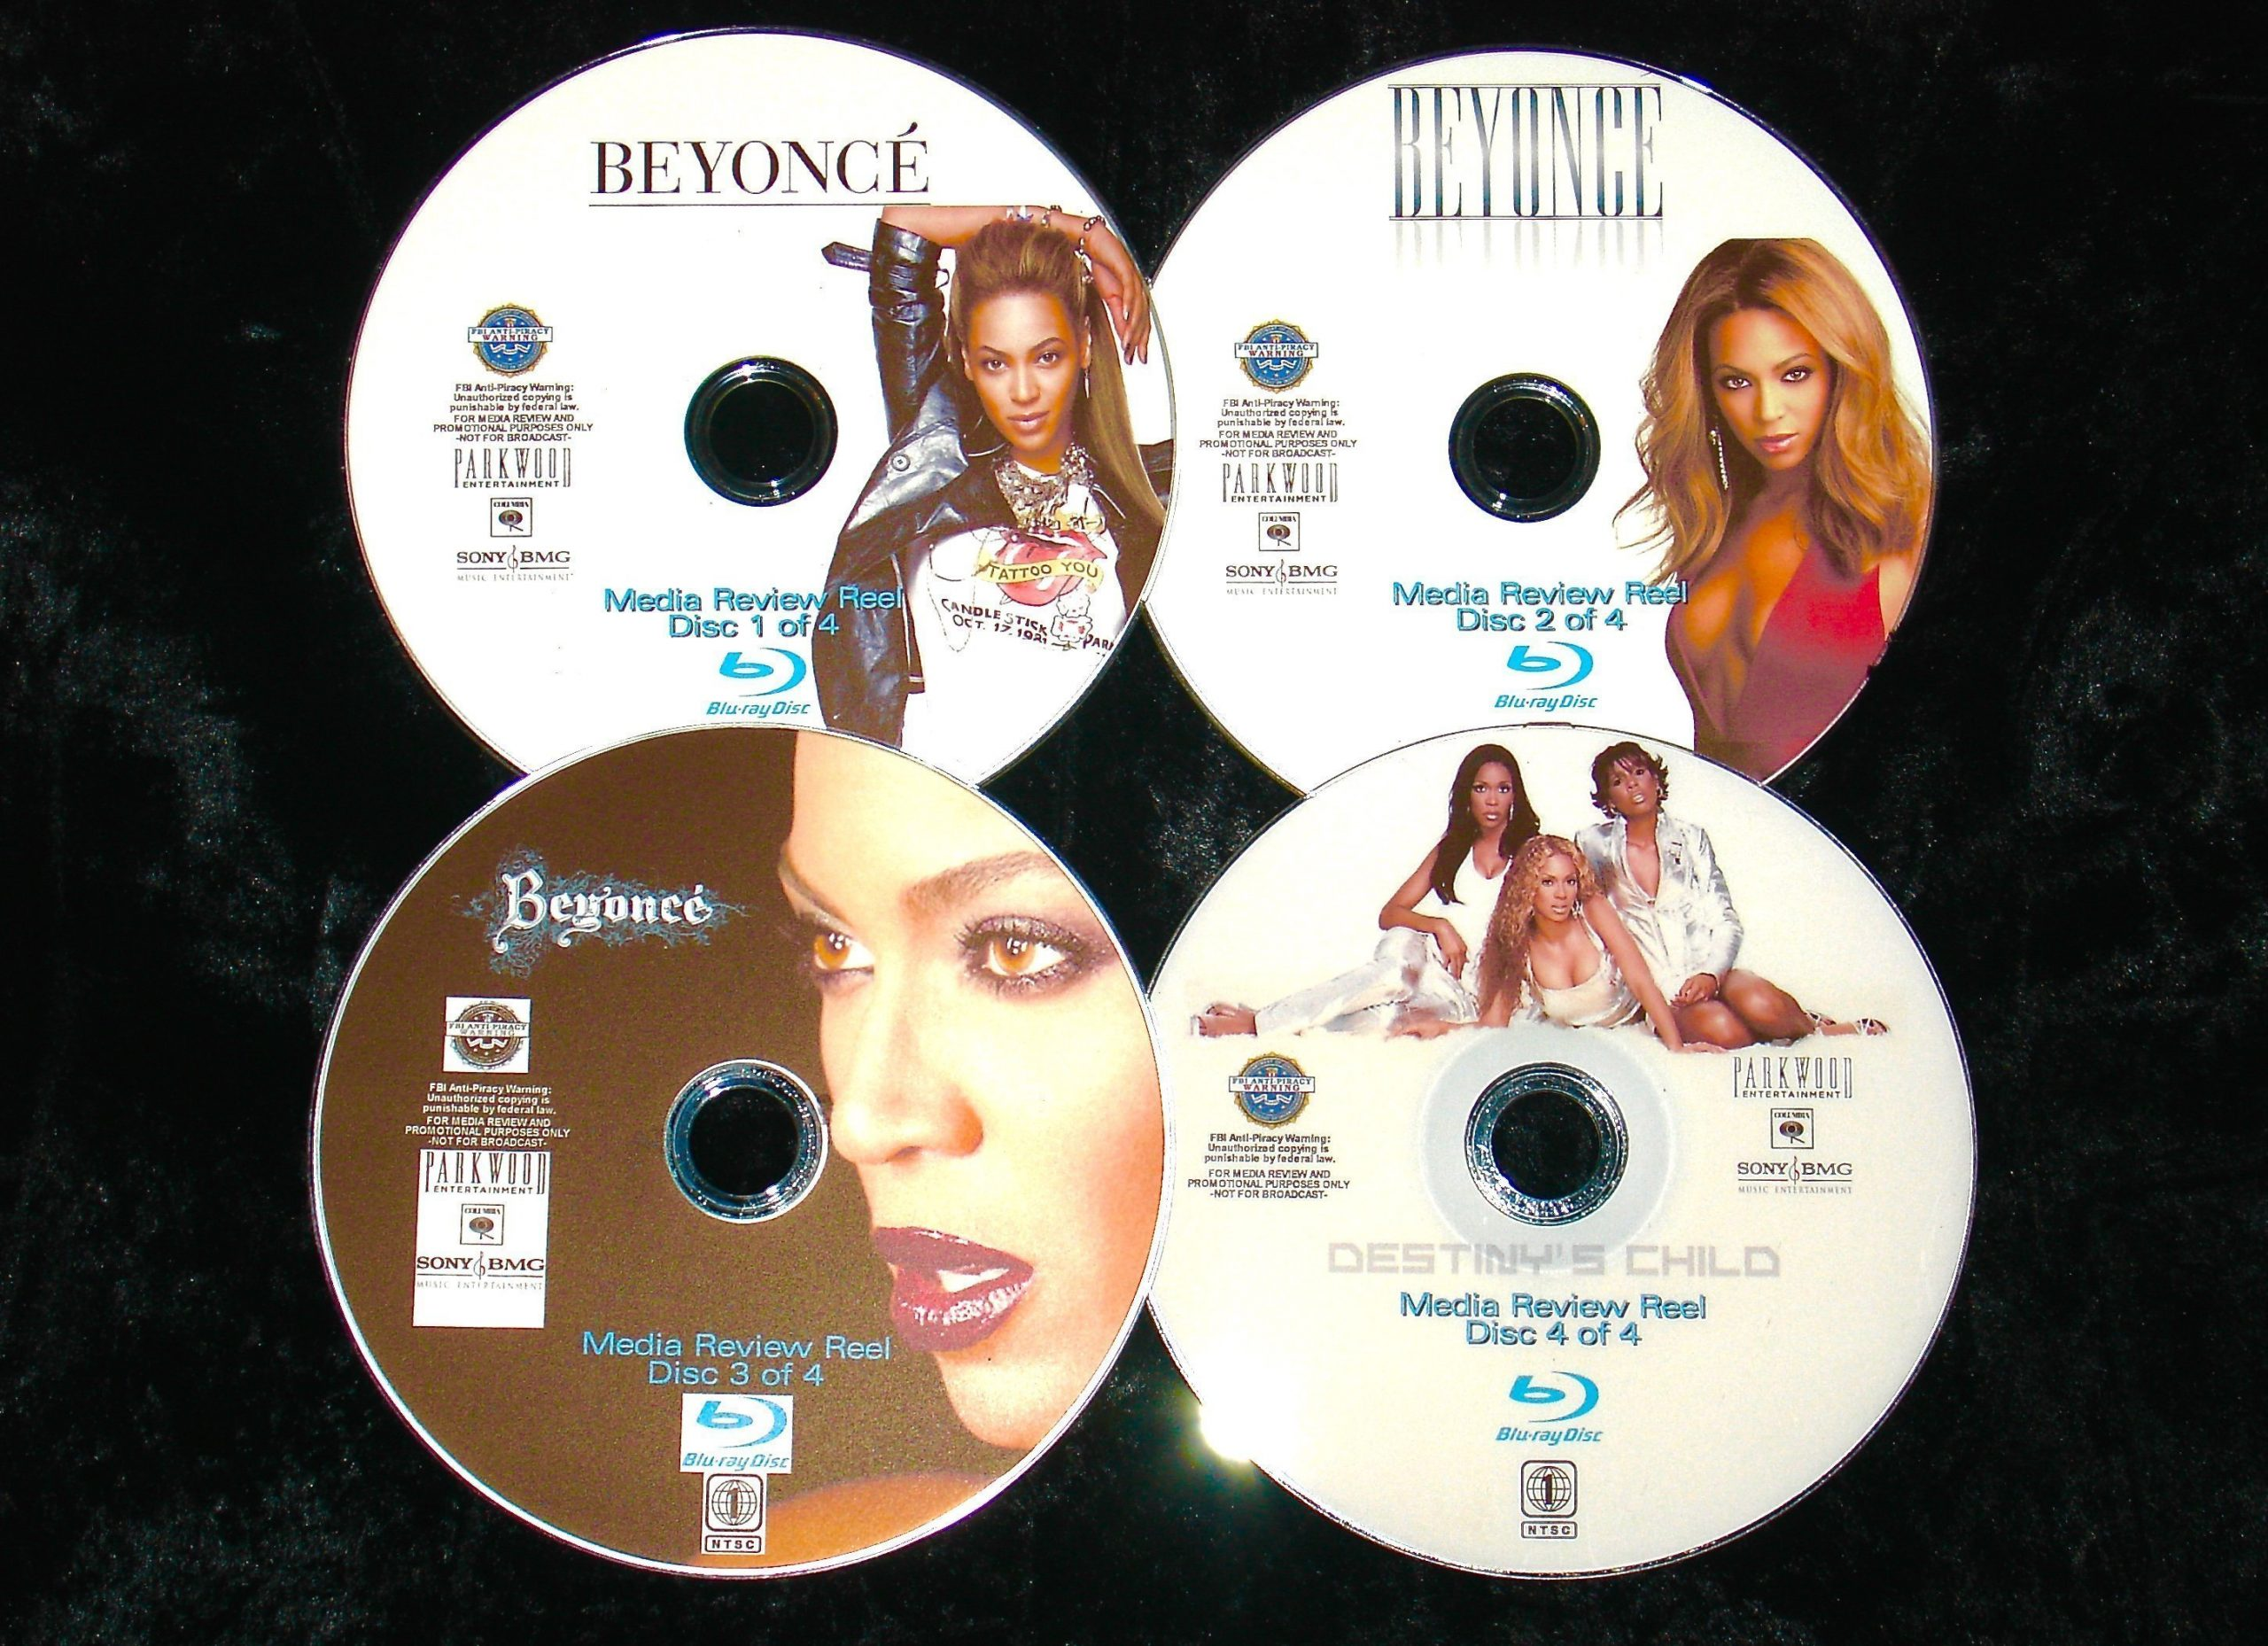 BEYONCE and DESTINY's CHILD Media Reel 77 Music Videos 4 BLU-RAY DVD Set (BLU-RAY FORMAT ONLY) Beyoncé Wyclef Jean, Timbaland, Amil, Jay-Z